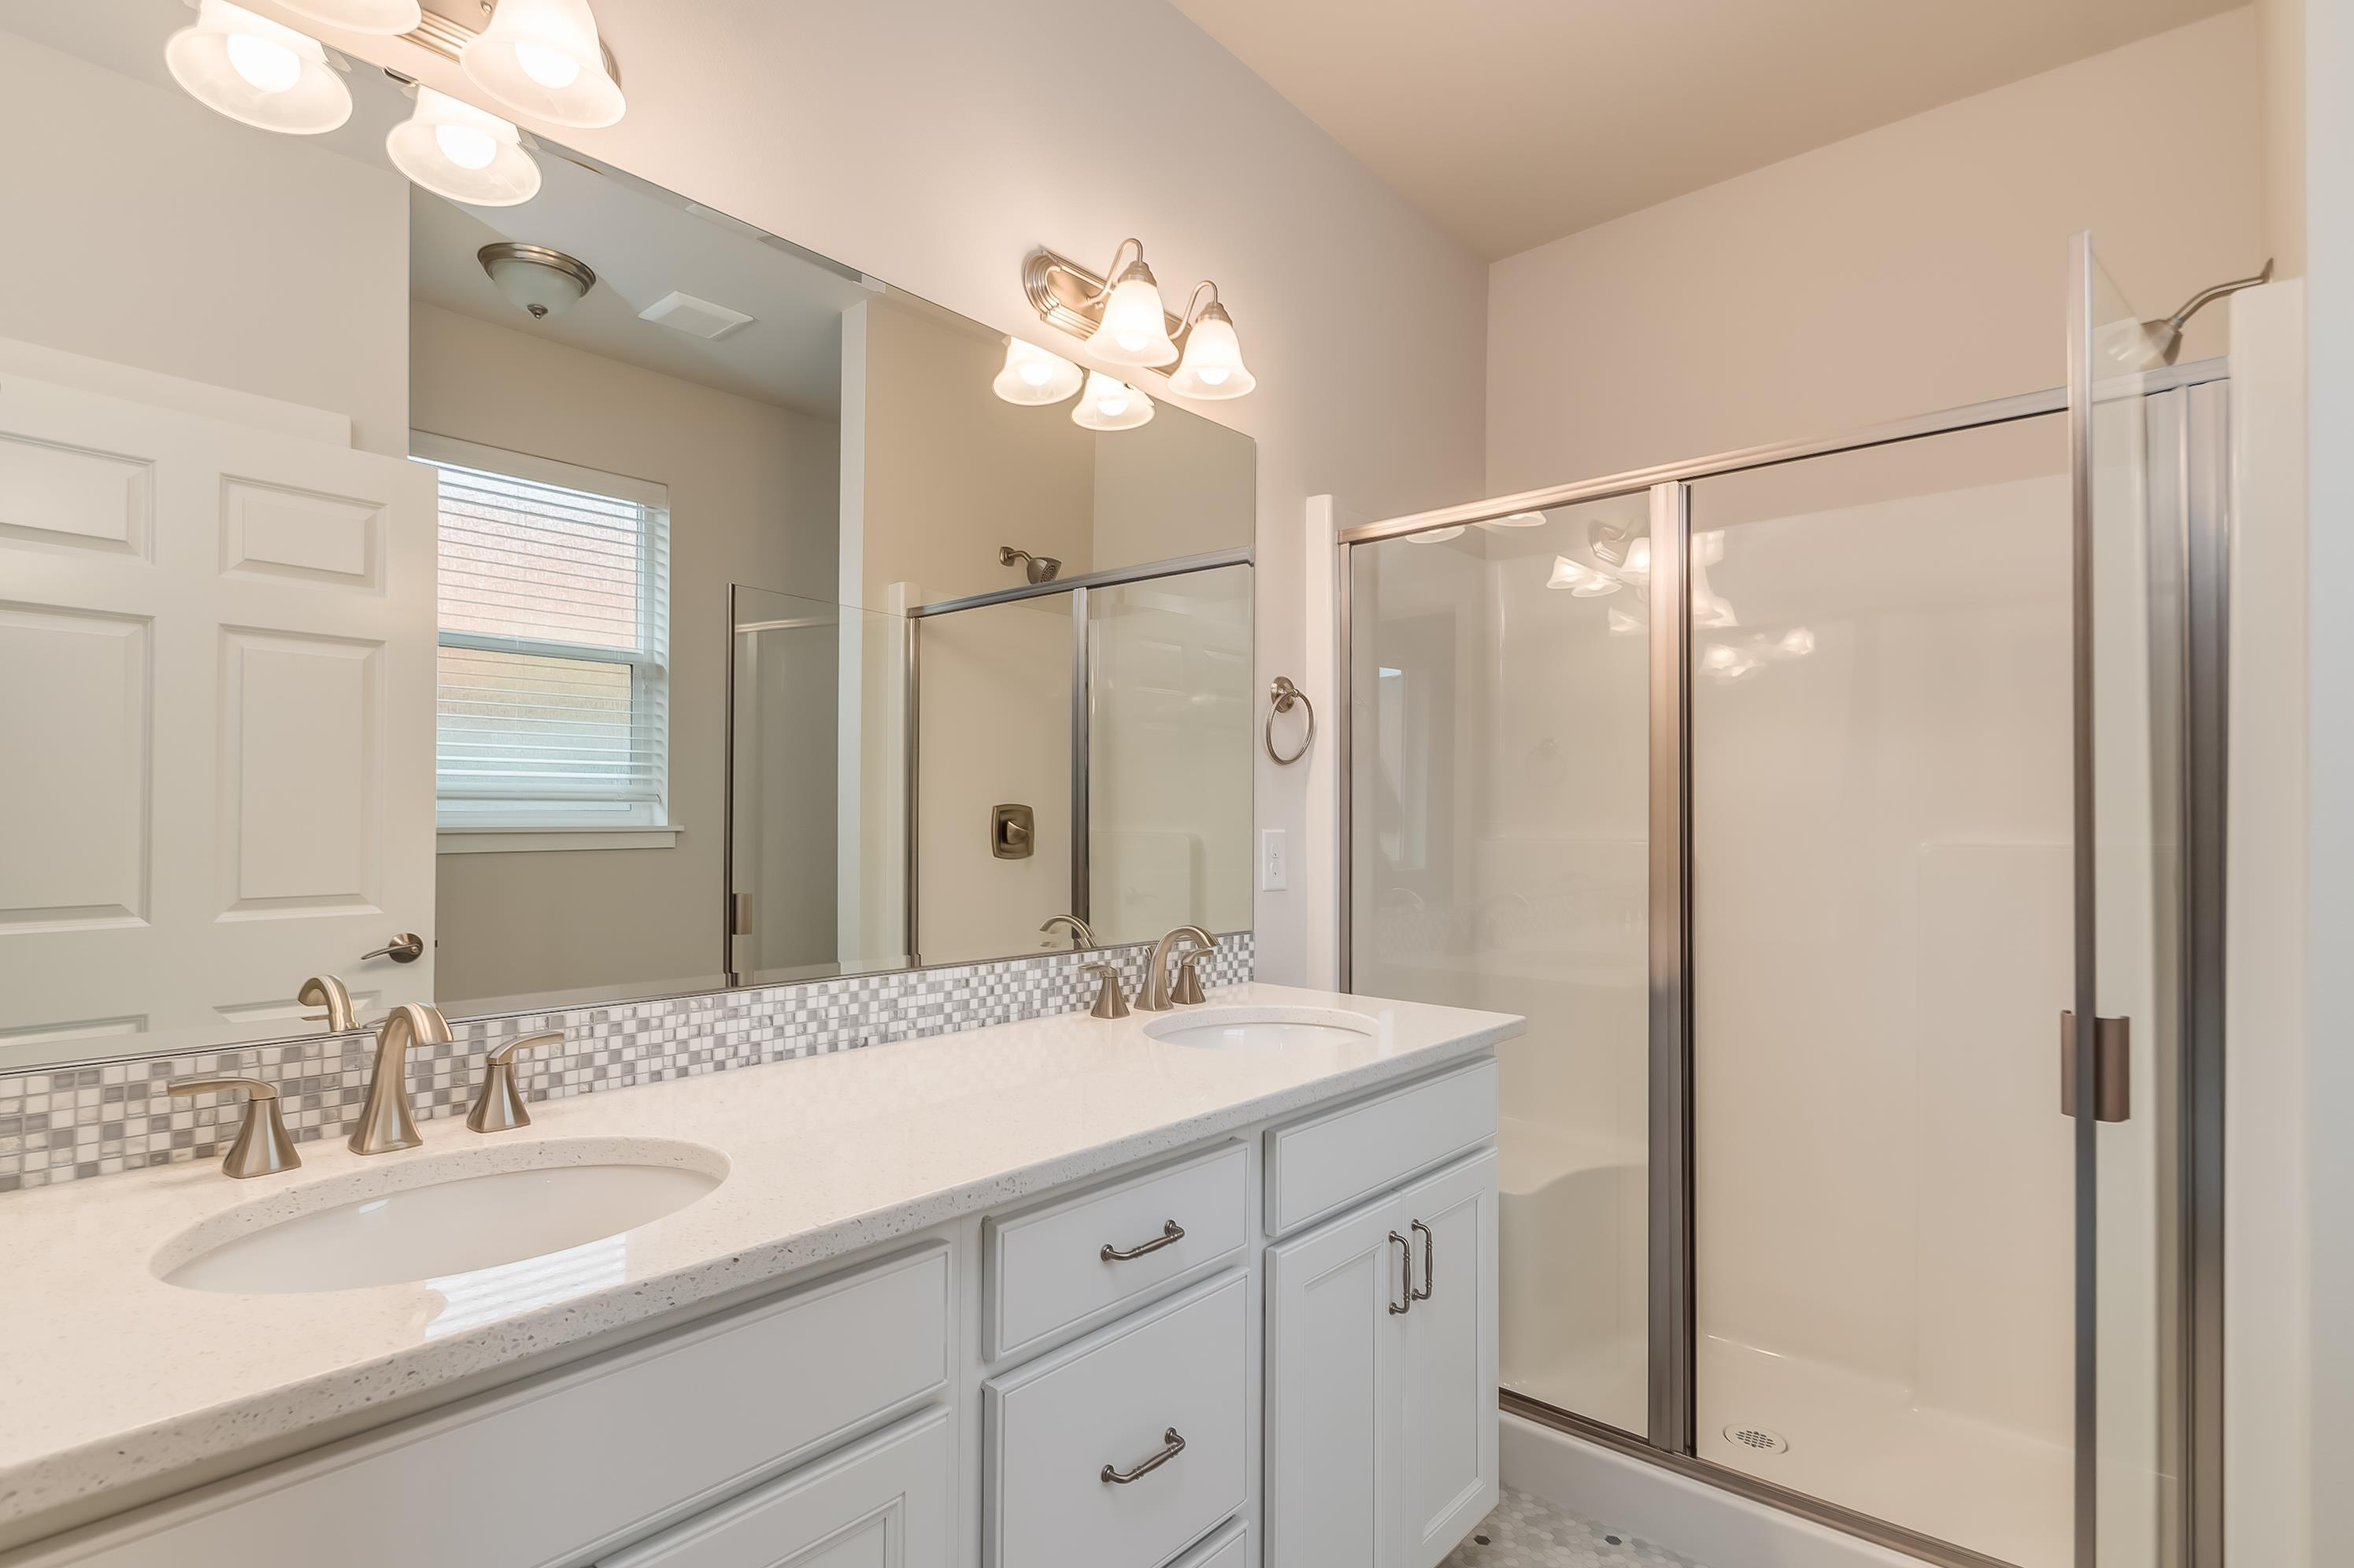 Bathroom featured in the CC Laurel By Landed Gentry Homes in Bellingham, WA